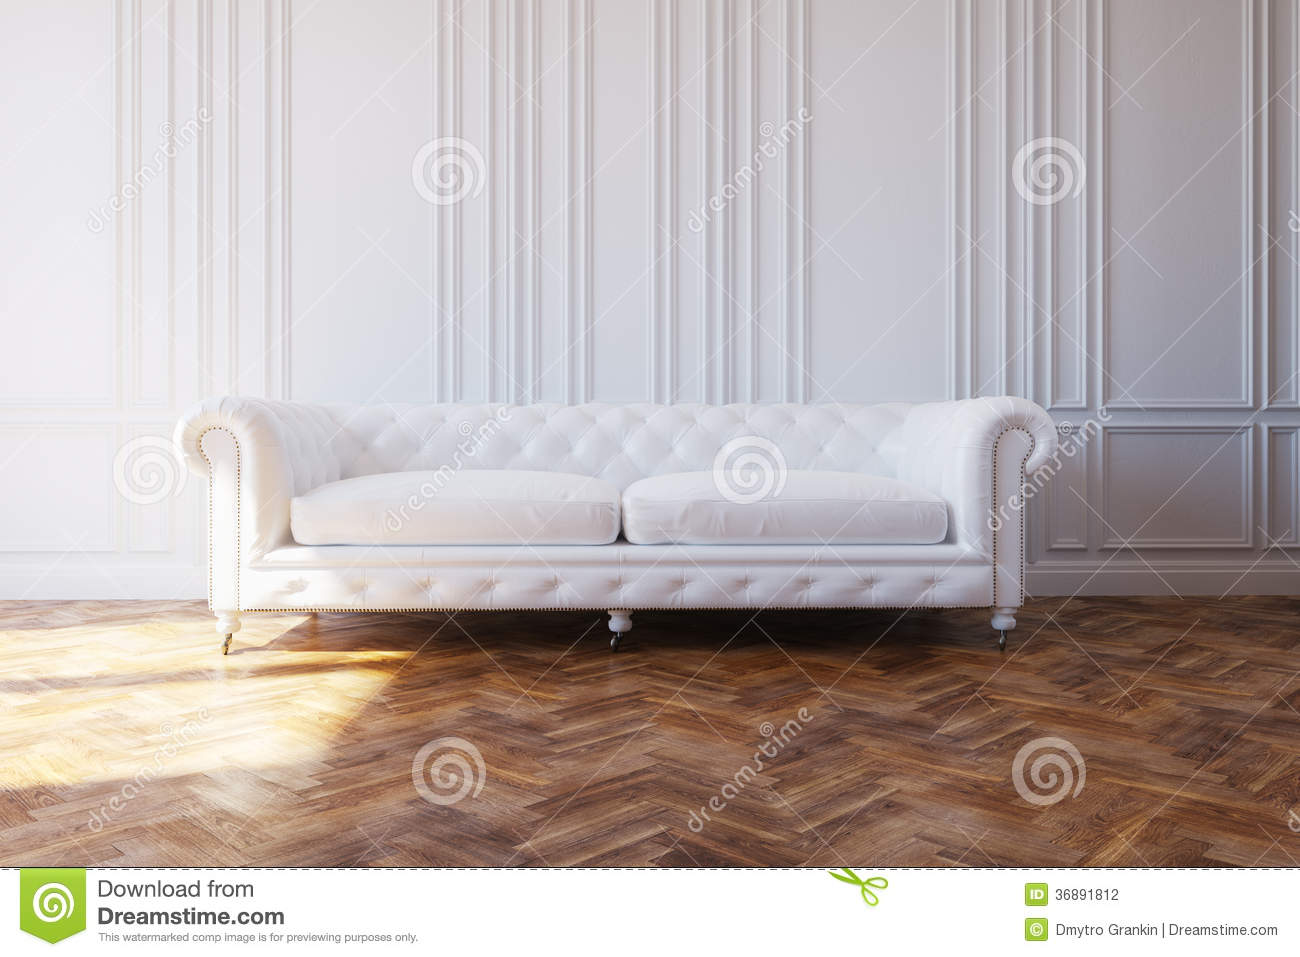 White luxury leather sofa in classic design interior stock photography image 36891812 - White contemporary sofa section for luxury room ...